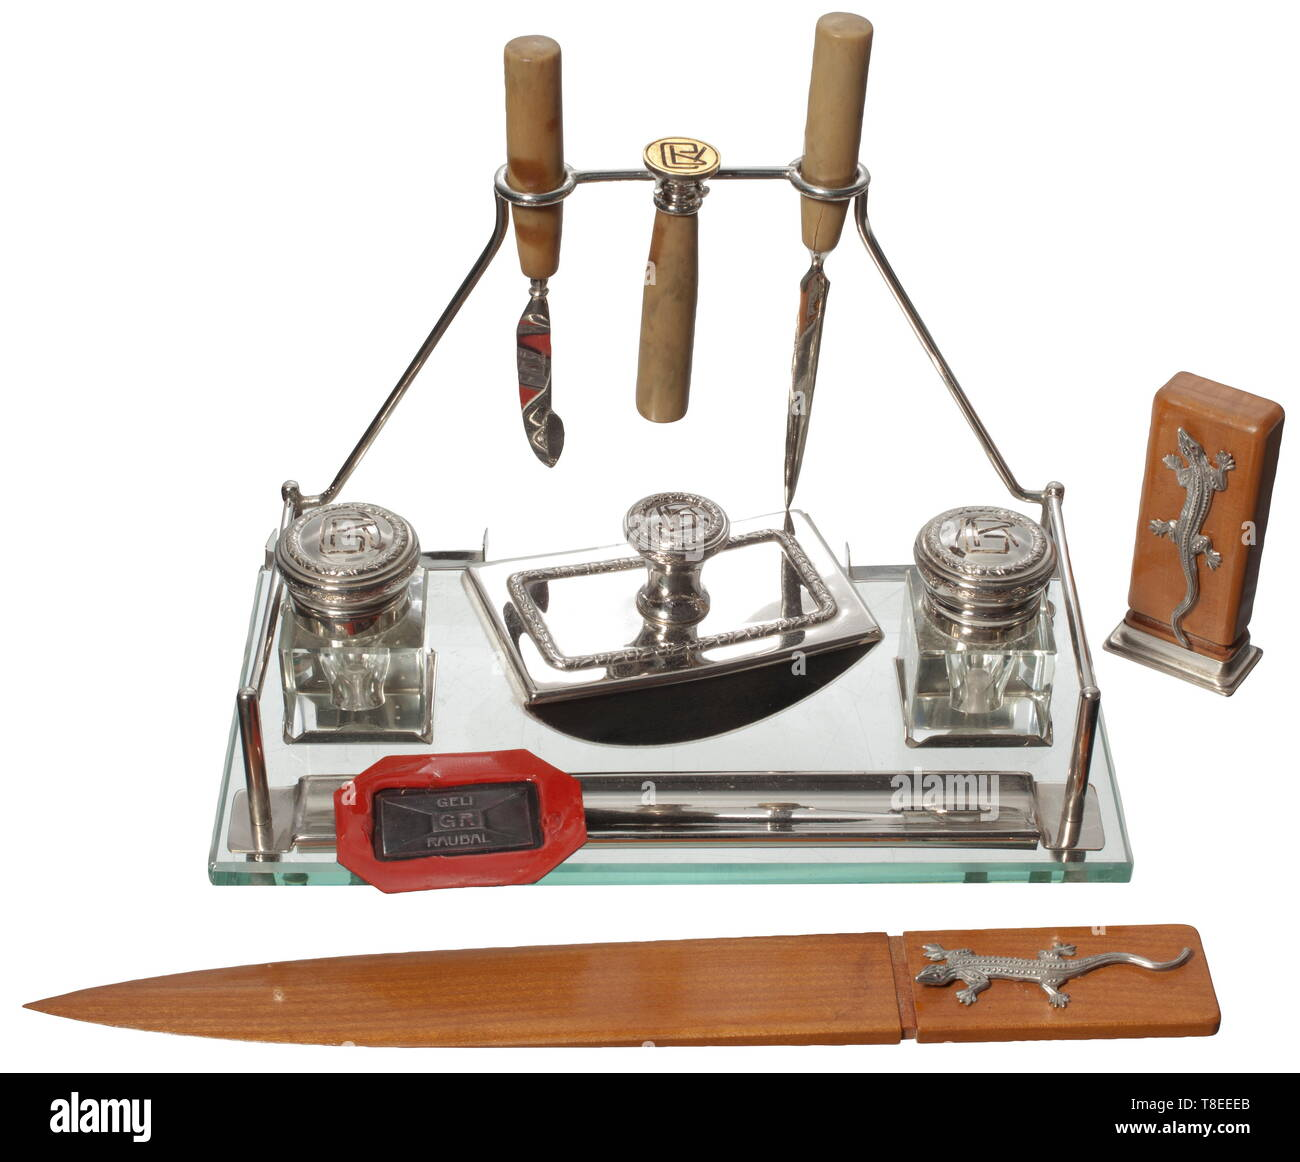 Angela 'Geli' Maria Raubal (1908 - 1931) - a silver-plated lady's writing set Glass, silver-plated metal, consisting of two ink wells, a blotter, a seal with the monogram 'GR', pen knife and letter opener, the ink wells and blotter also with the engraved monogram 'GR'. Another seal with silver seal matrix in the form of an envelope, monogram 'GR' and the name 'Geli Raubal', the wooden grip with applied silver lizard, with an associated letter opener. Size of the set 16 x 19 x 10 cm, height of the lizard seal 7.2 cm. Length of the lizard letter opener 24 cm. Angela 'Geli' Ra, Editorial-Use-Only - Stock Image